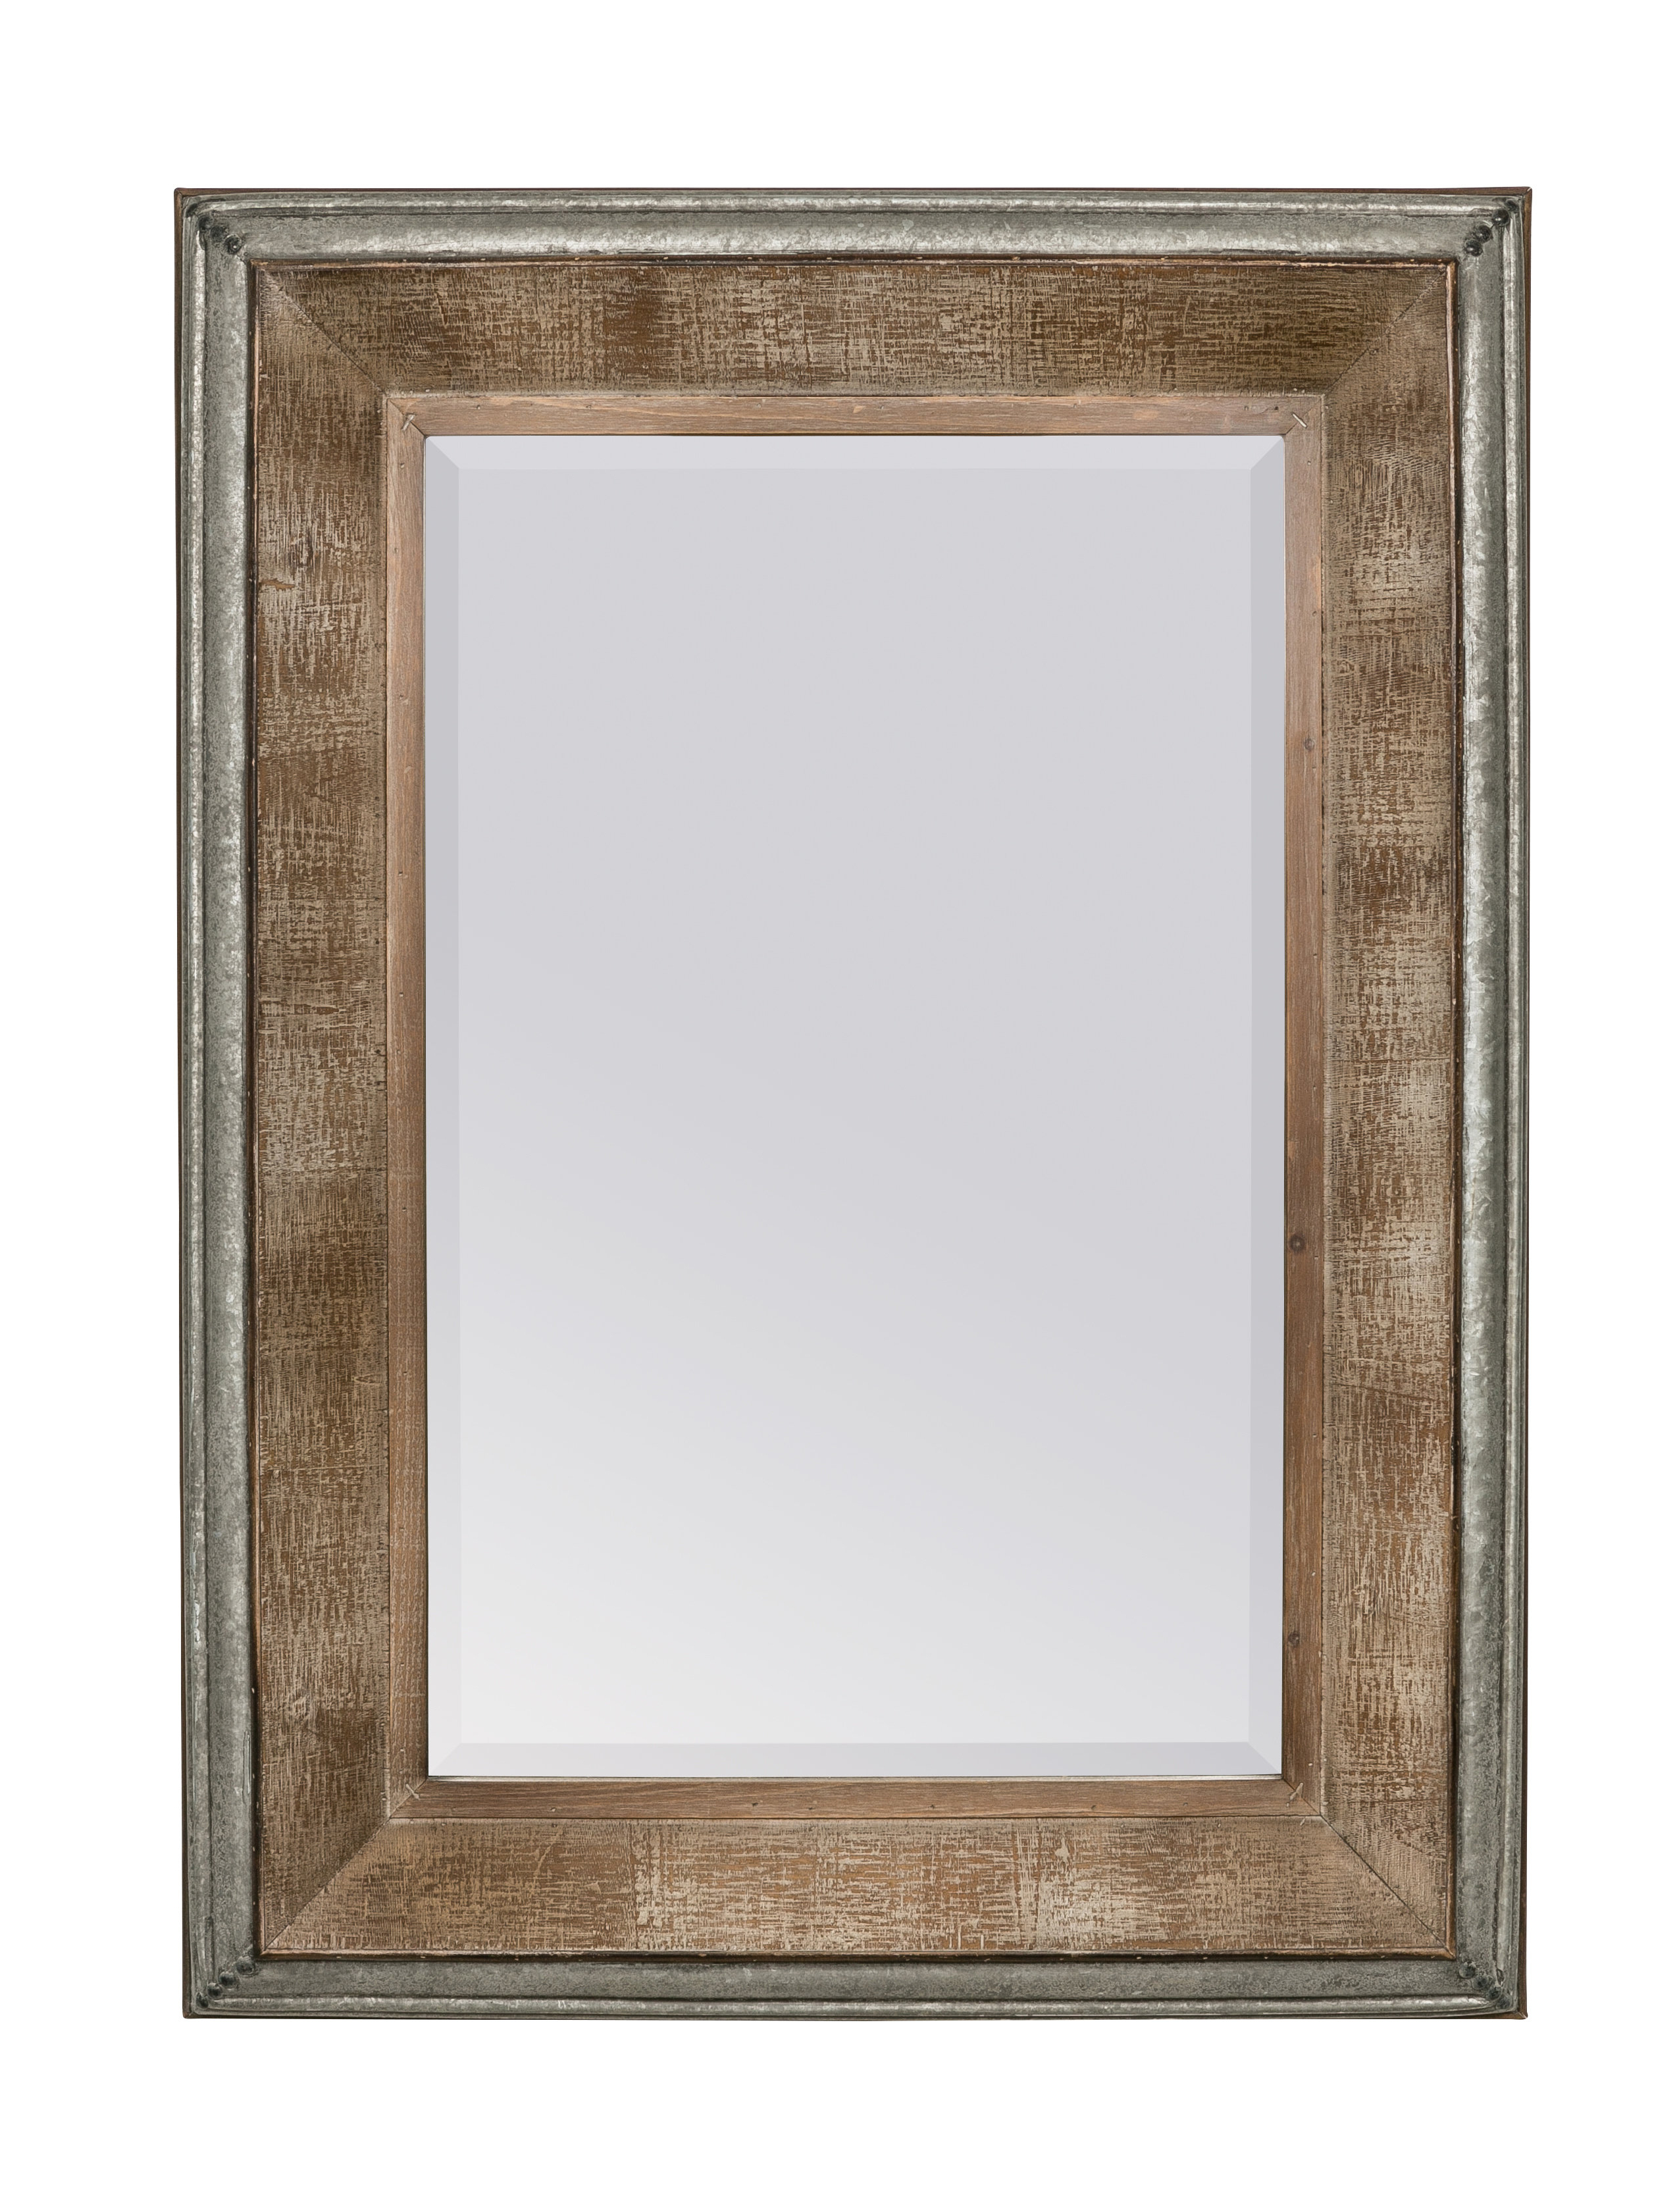 Modern & Contemporary Beveled Accent Mirrors Throughout Most Recently Released Hatten Modern & Contemporary Beveled Accent Mirror (View 11 of 20)